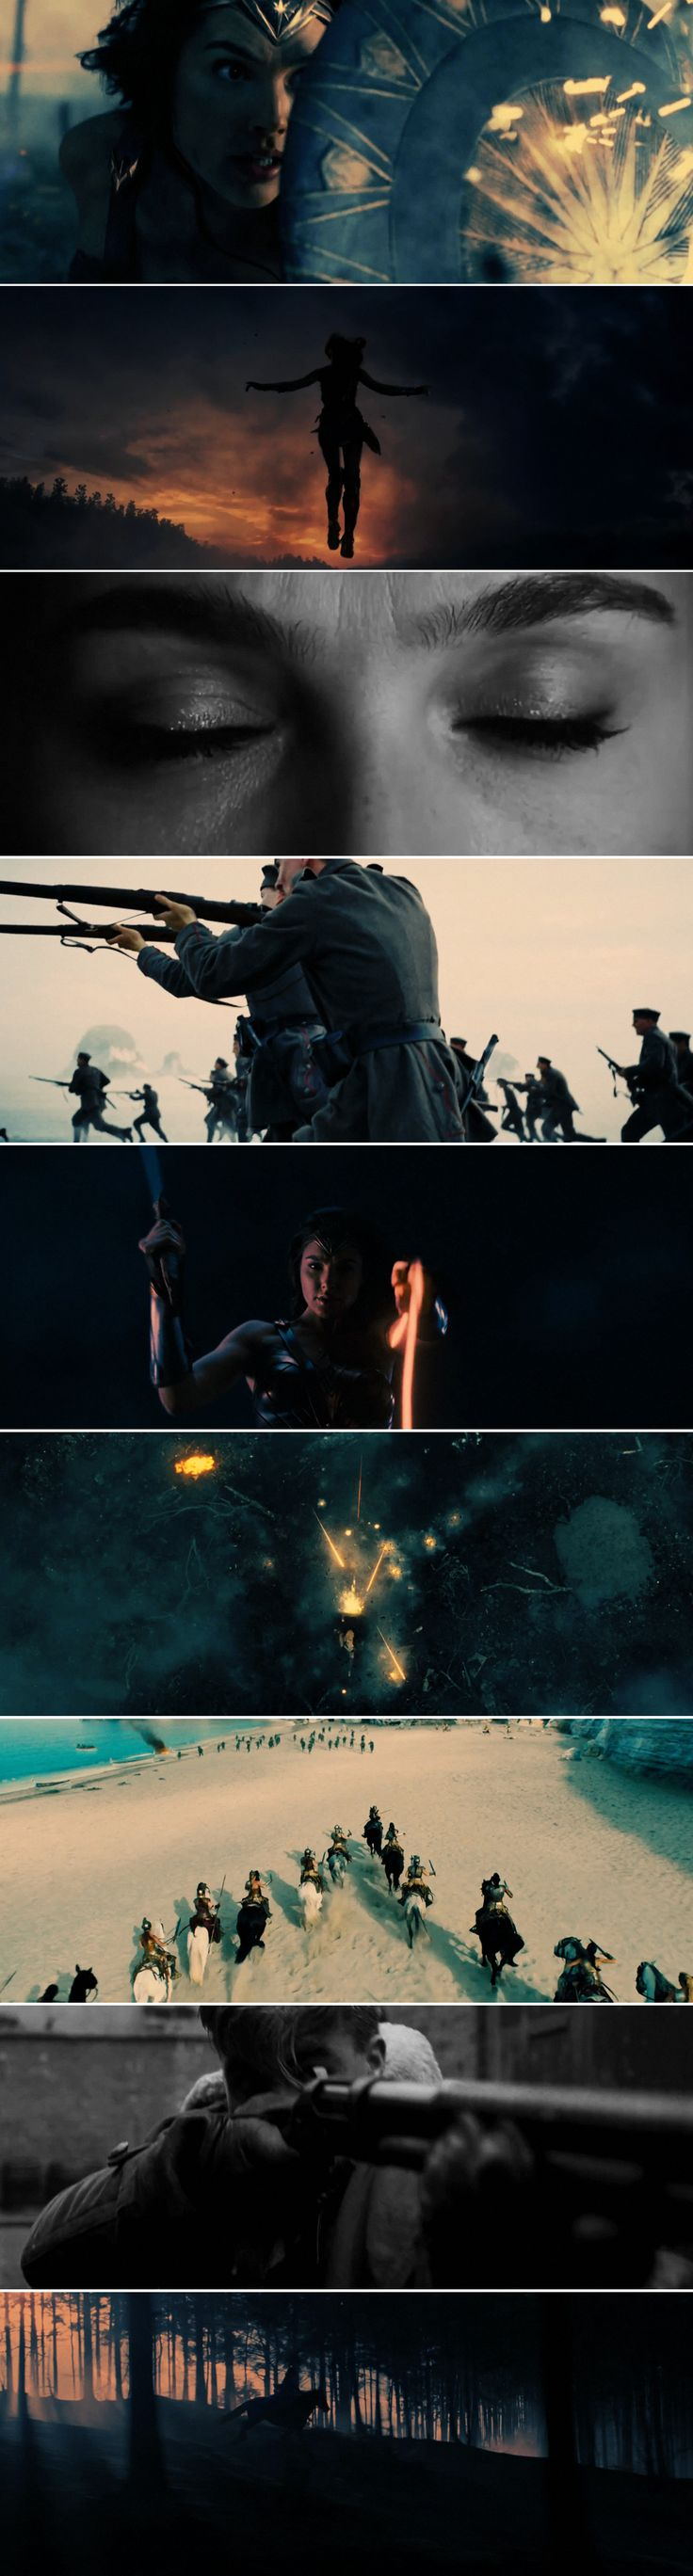 I will fight for those who cannot fight for themselves.  //  Wonder Woman (2017)